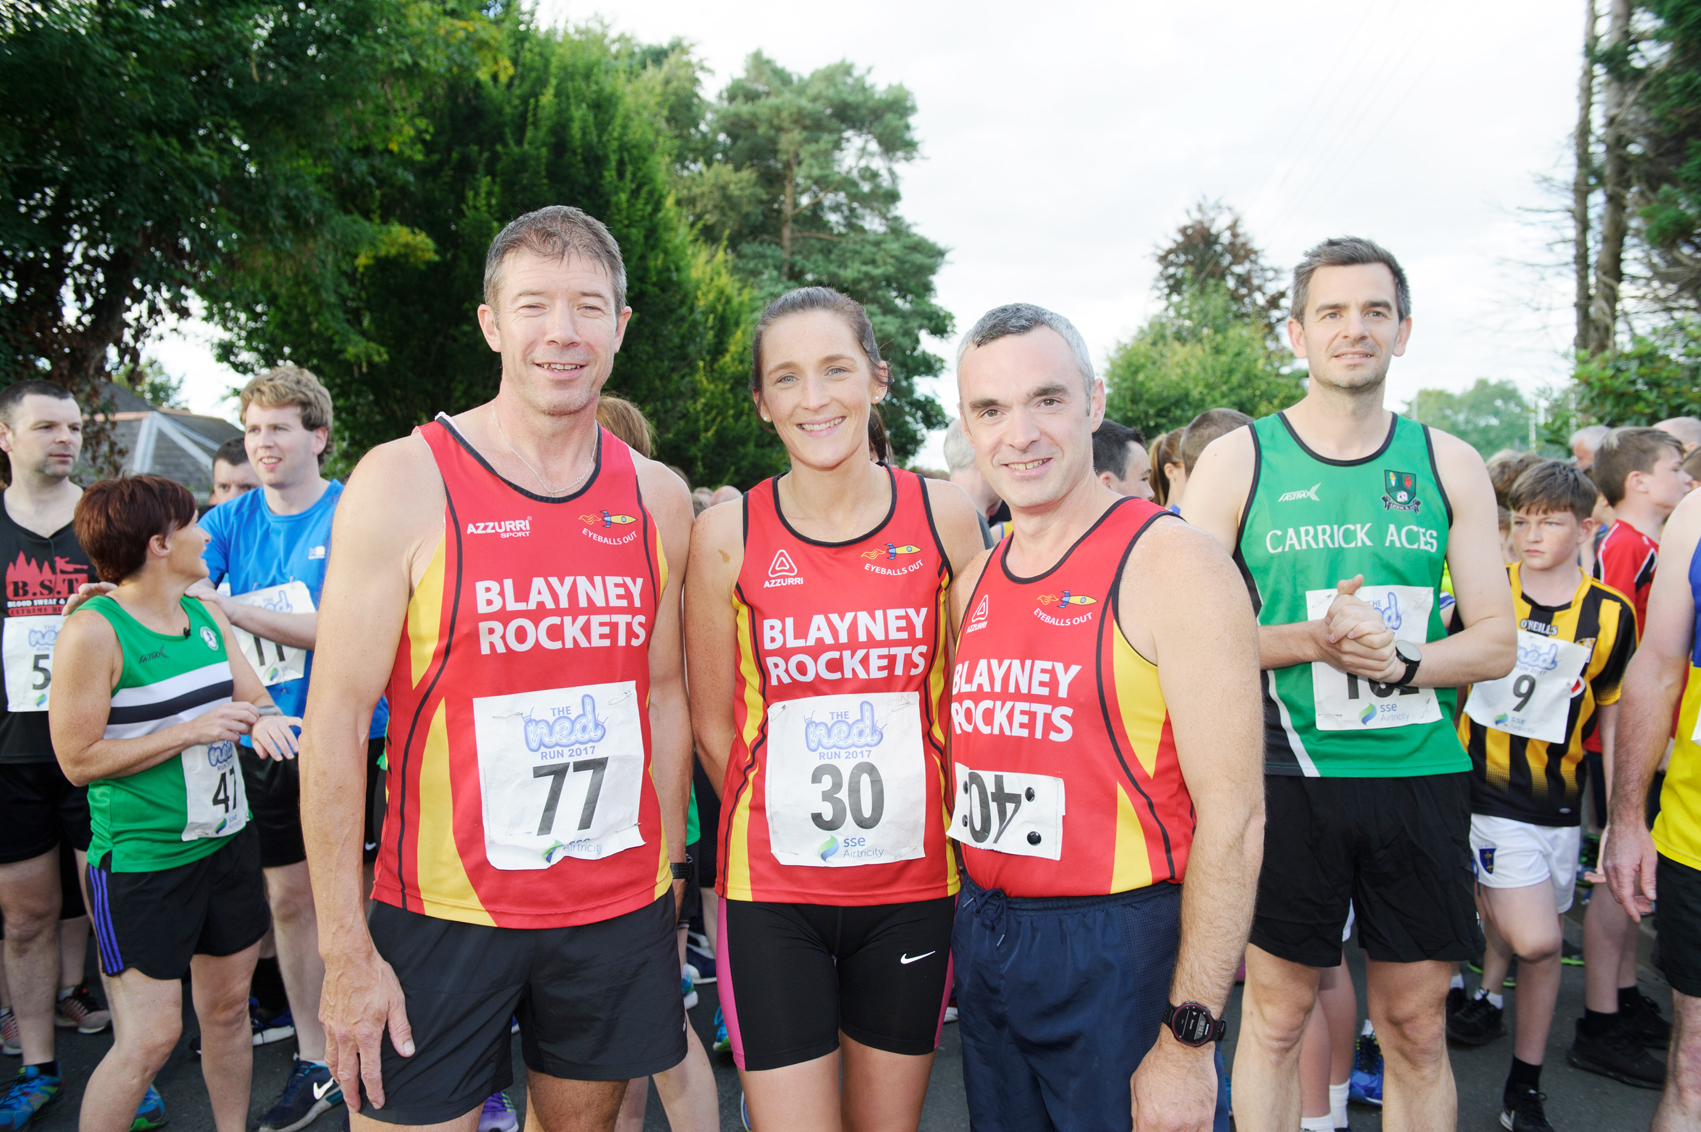 At The Ned Run were (L-R) Frankie Gorman, Nicola Flanagan and Derek Callan, from Blayney Rockets. ©Rory Geary/The Northern Standard